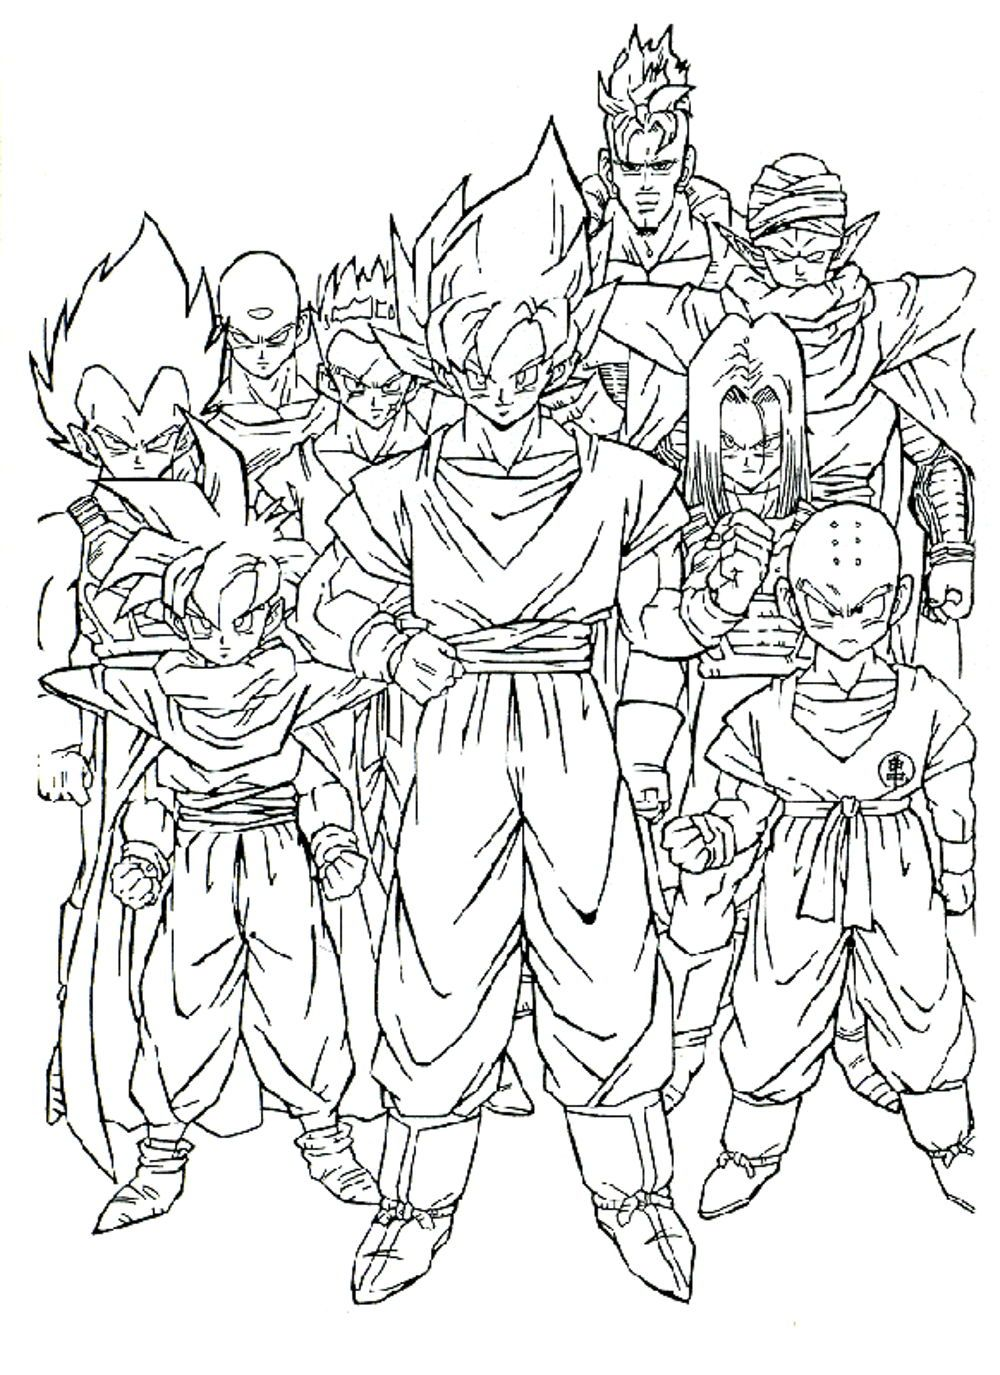 Z coloring pages printable - Dragon Ball Z Coloring Page Printable Kids Colouring Pages